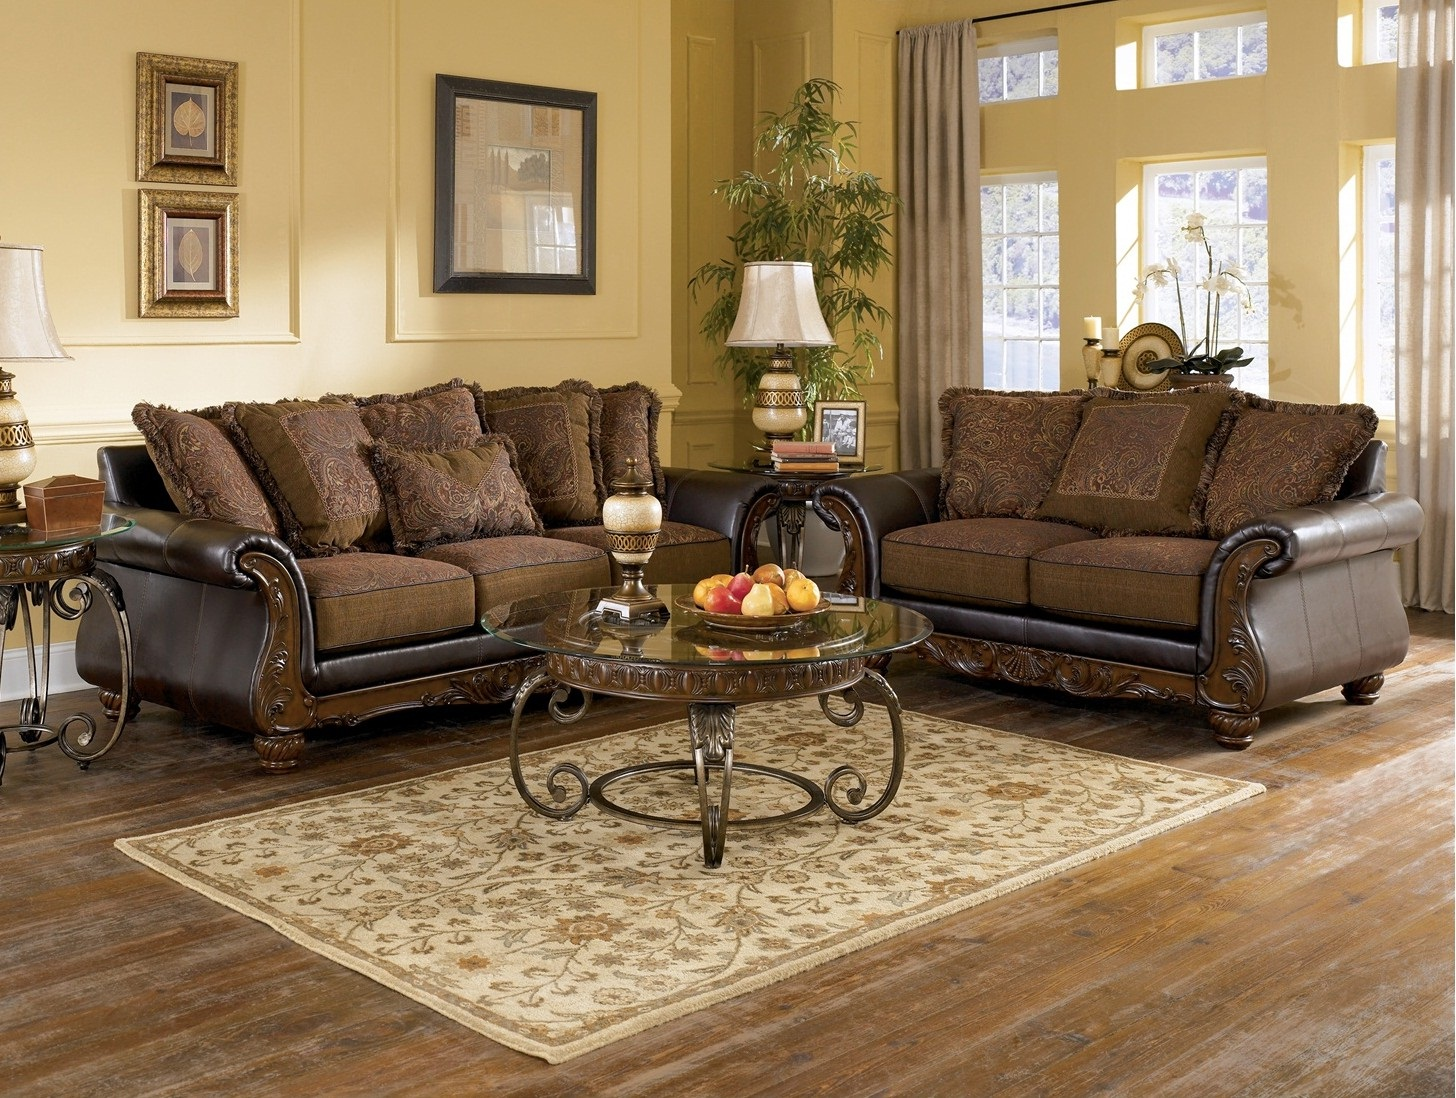 Cheap living room sets under 500 roy home design for Cheap living room seating